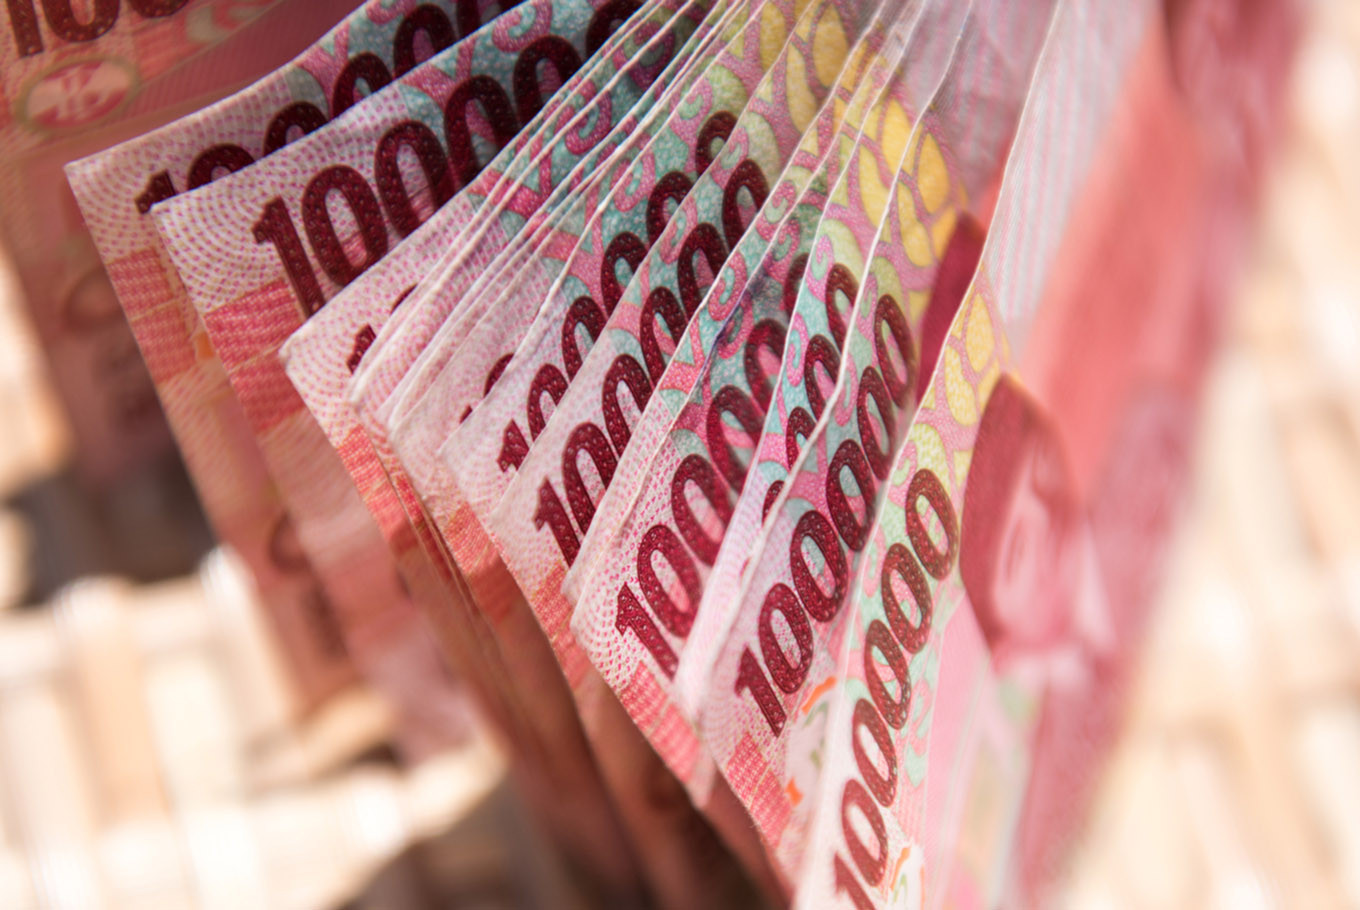 Rupiah drops further on Tuesday, heads toward Rp 15,000 per US